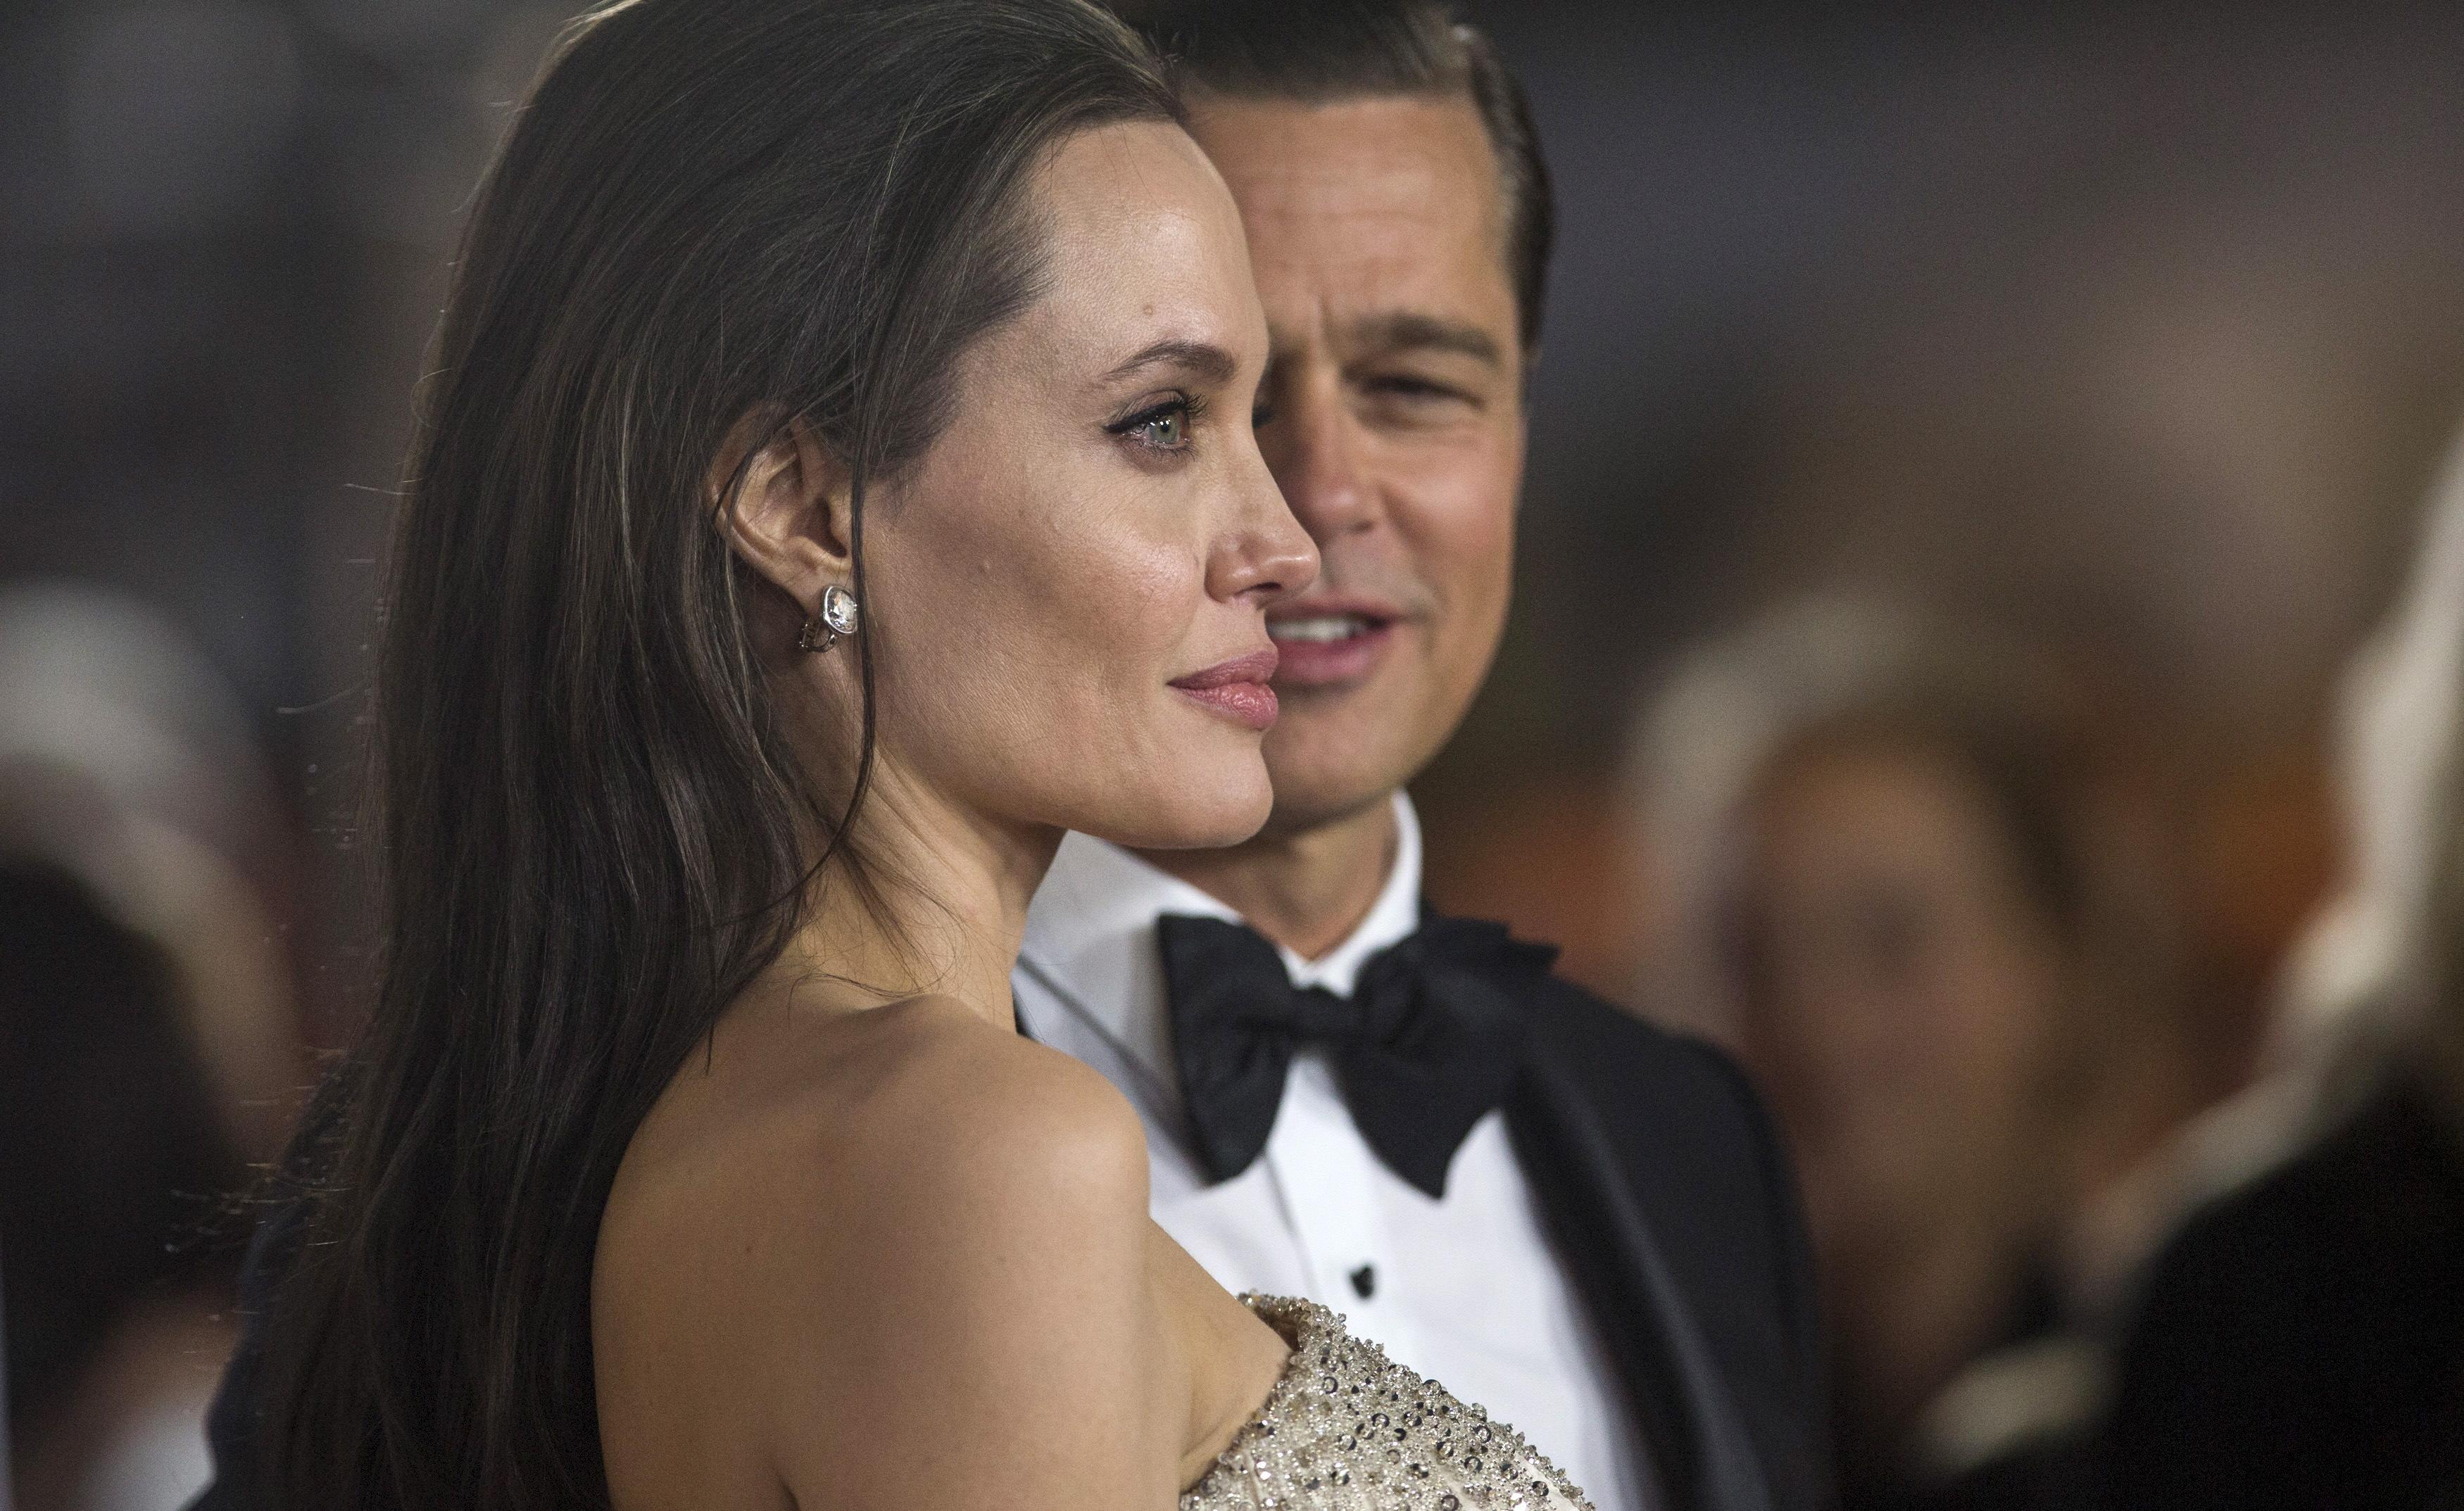 Angelina Jolie's Dad Jon Voight Wants Daughter, Brad Pitt To Get Back Together